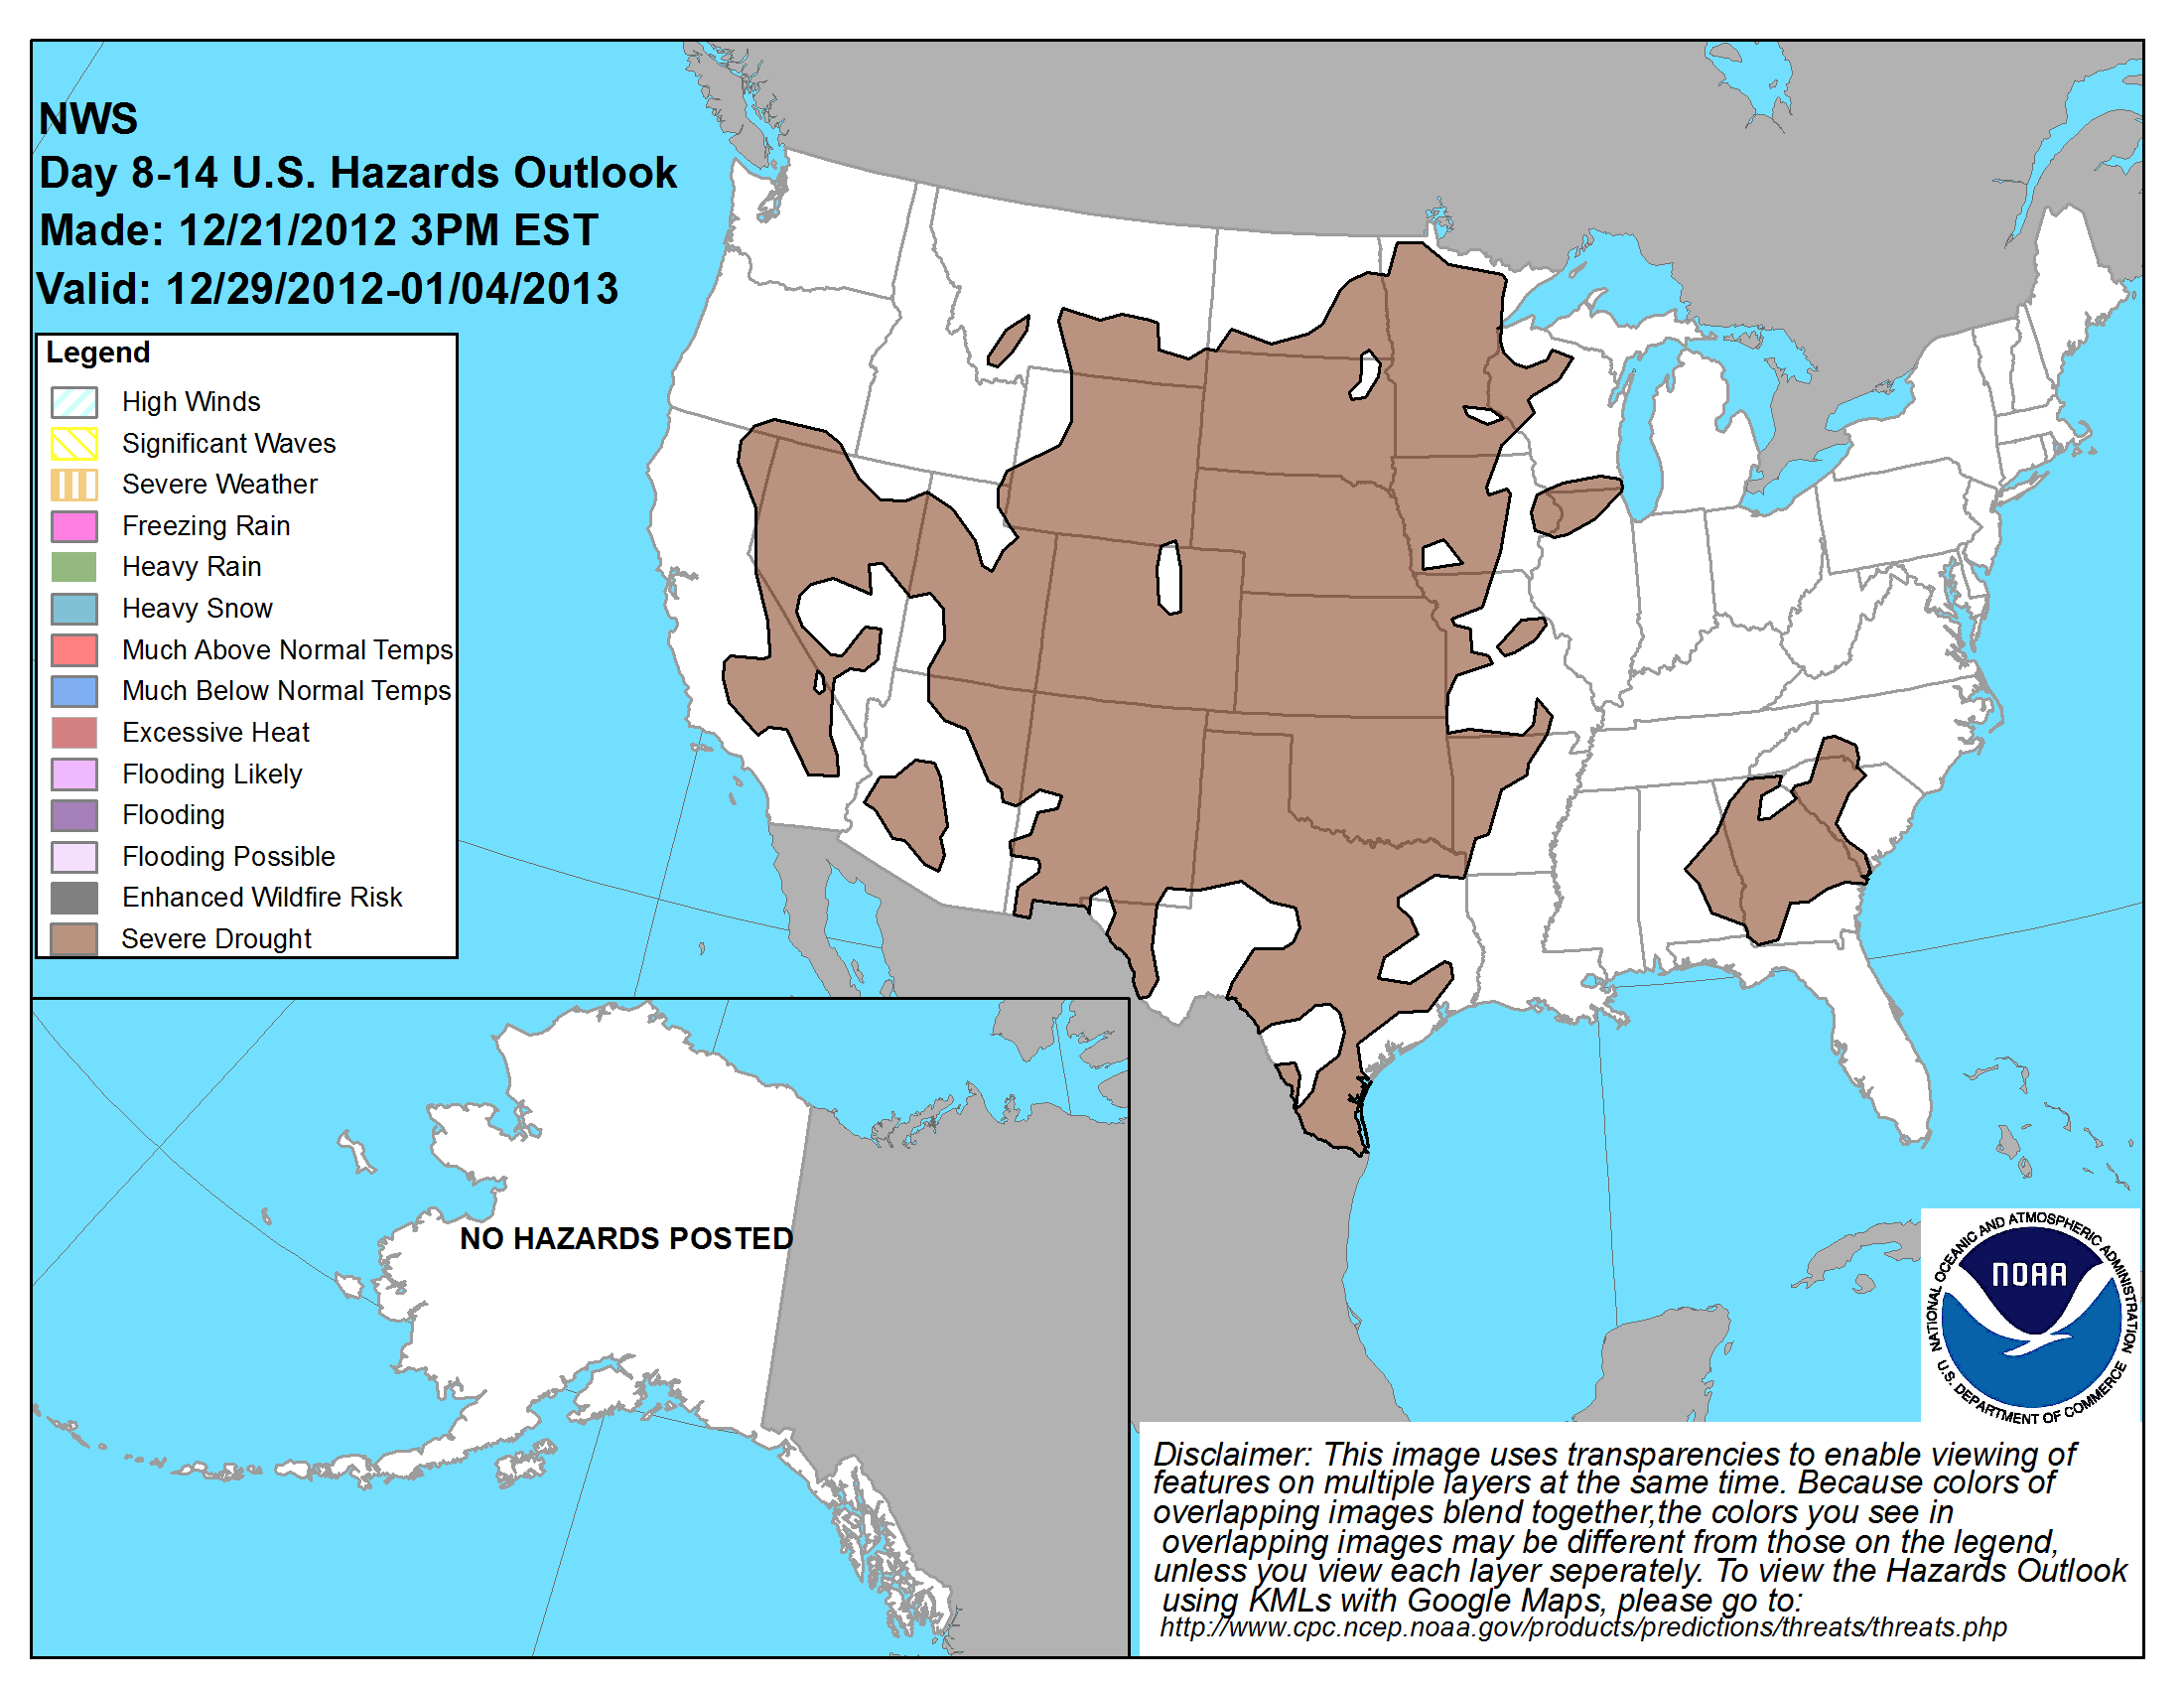 8 - 14 Day Weather Hazards Outlook Contours